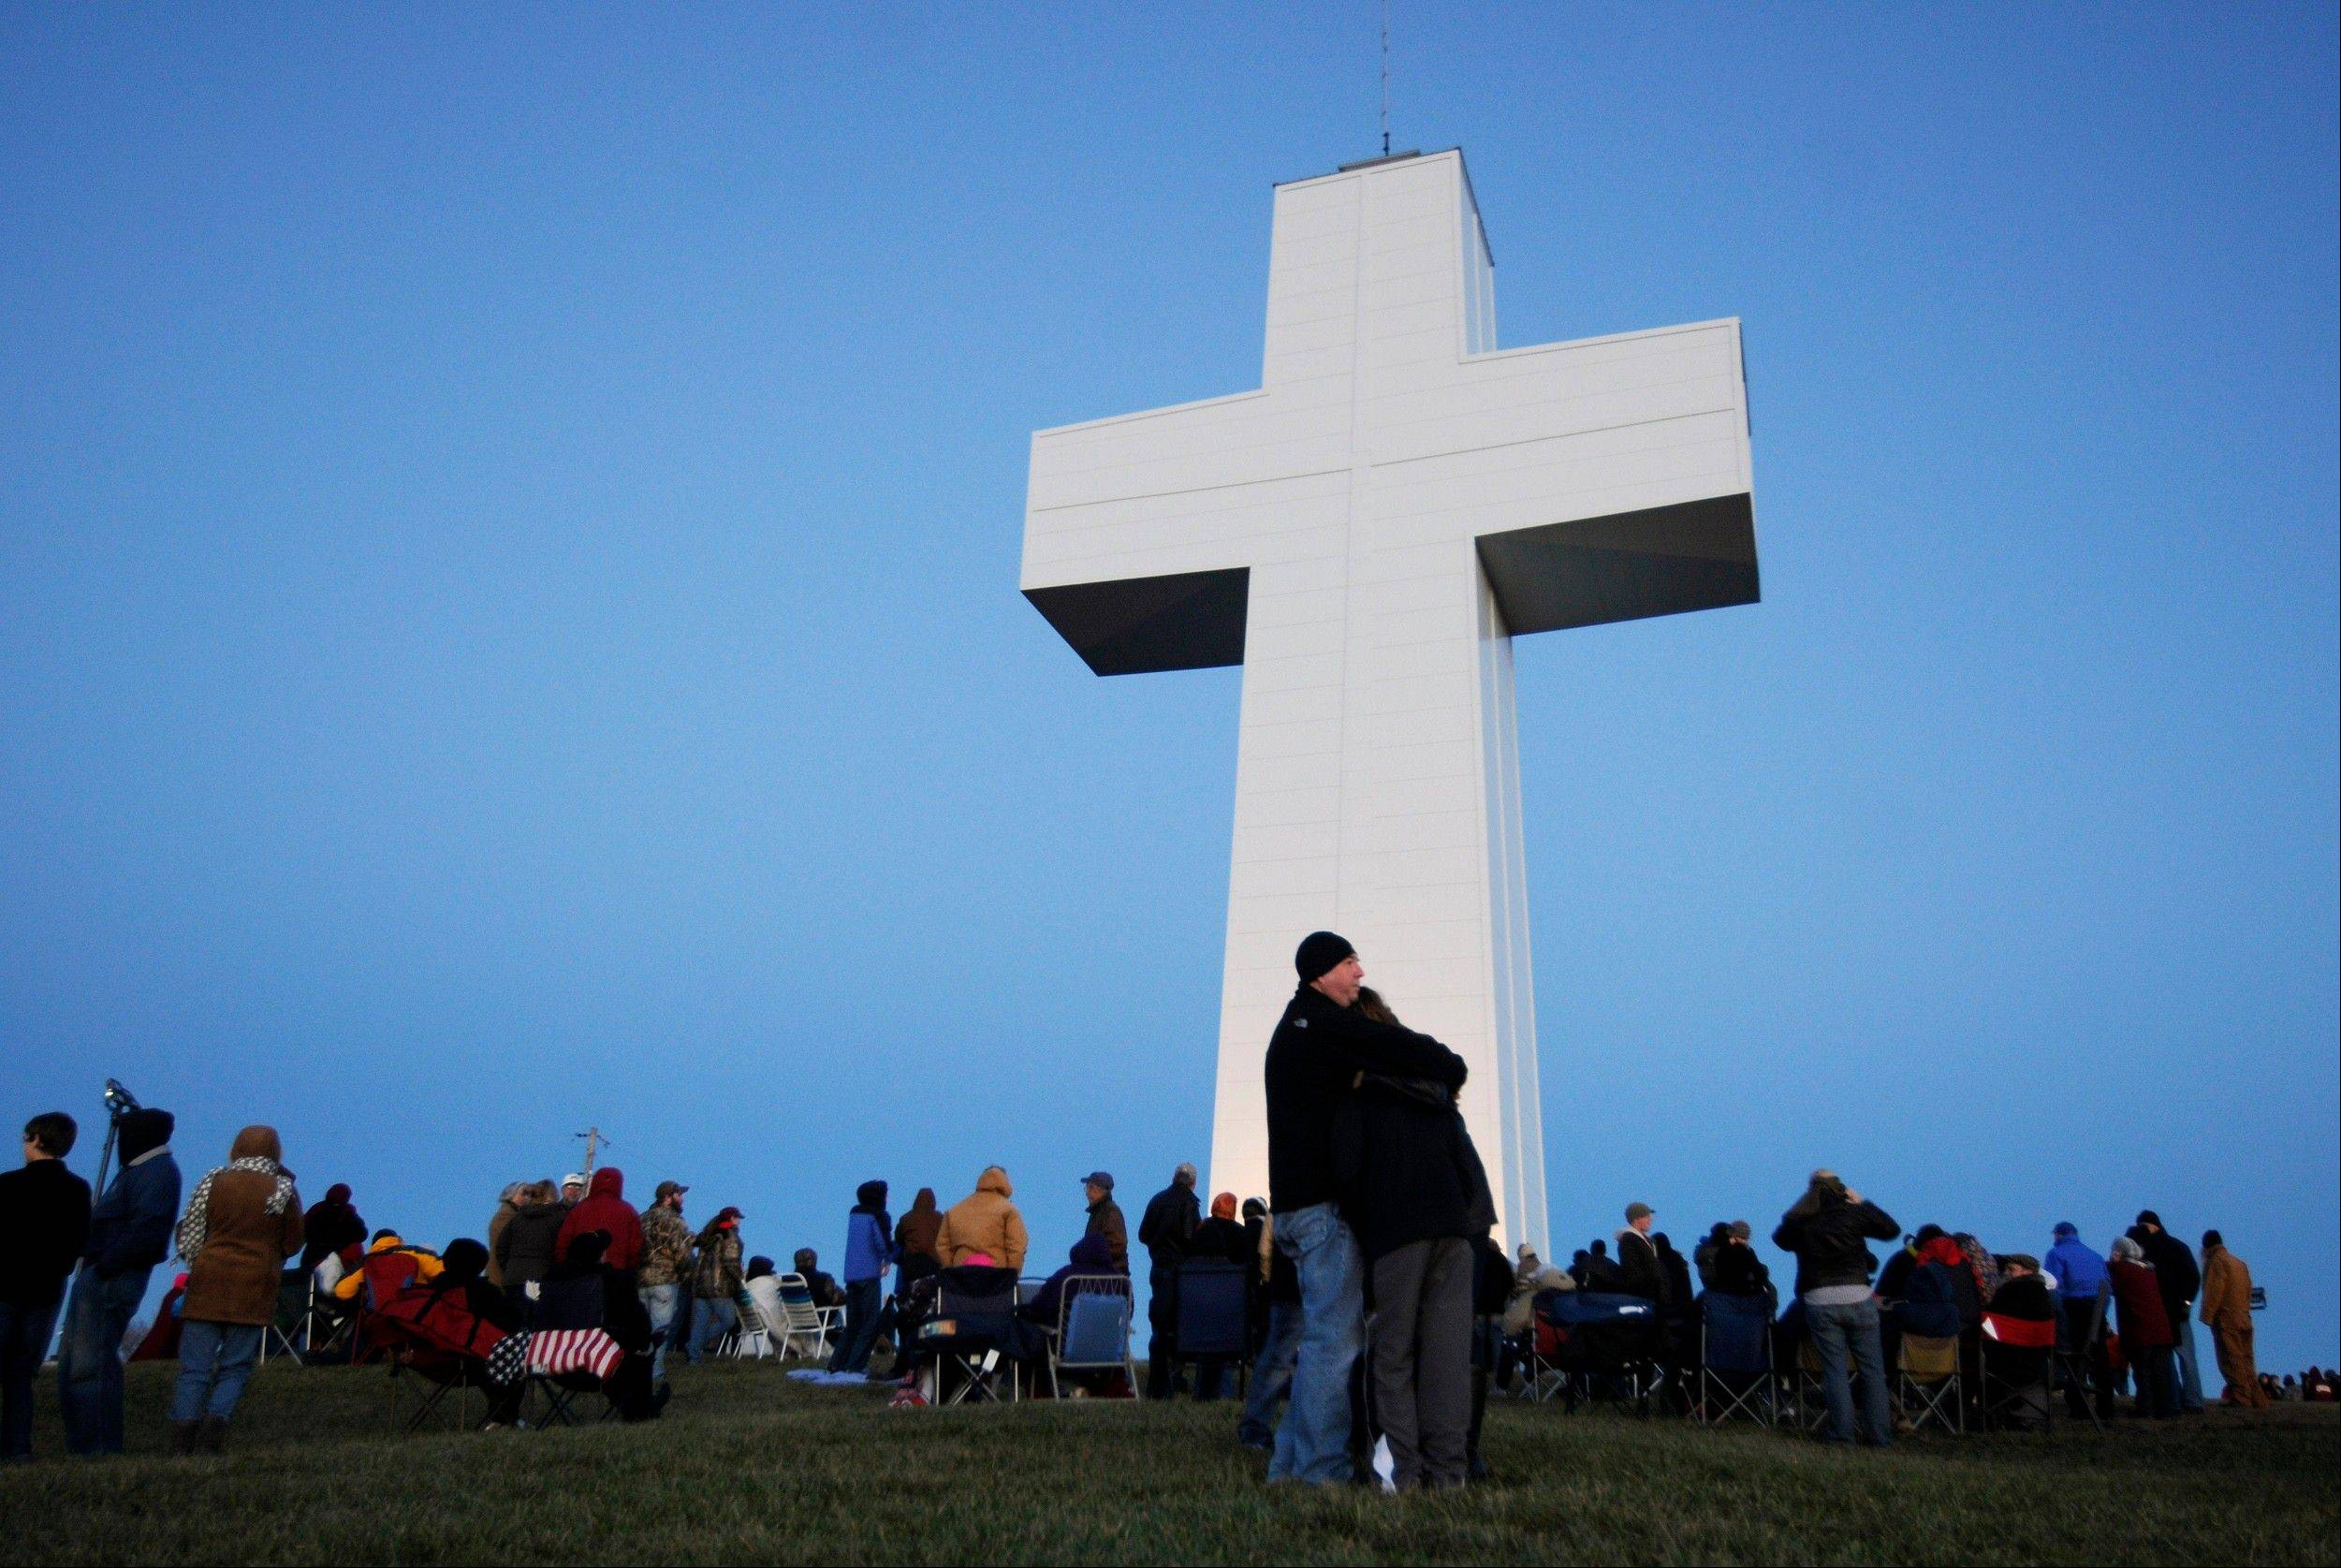 In this Dec. 22, 2012, photo, spectators huddle together for warmth before the lighting of the Bald Knob Cross of Peace in Alto Pass, Ill. The lighting ceremony marked the completion of a renovation project that began in 2009.